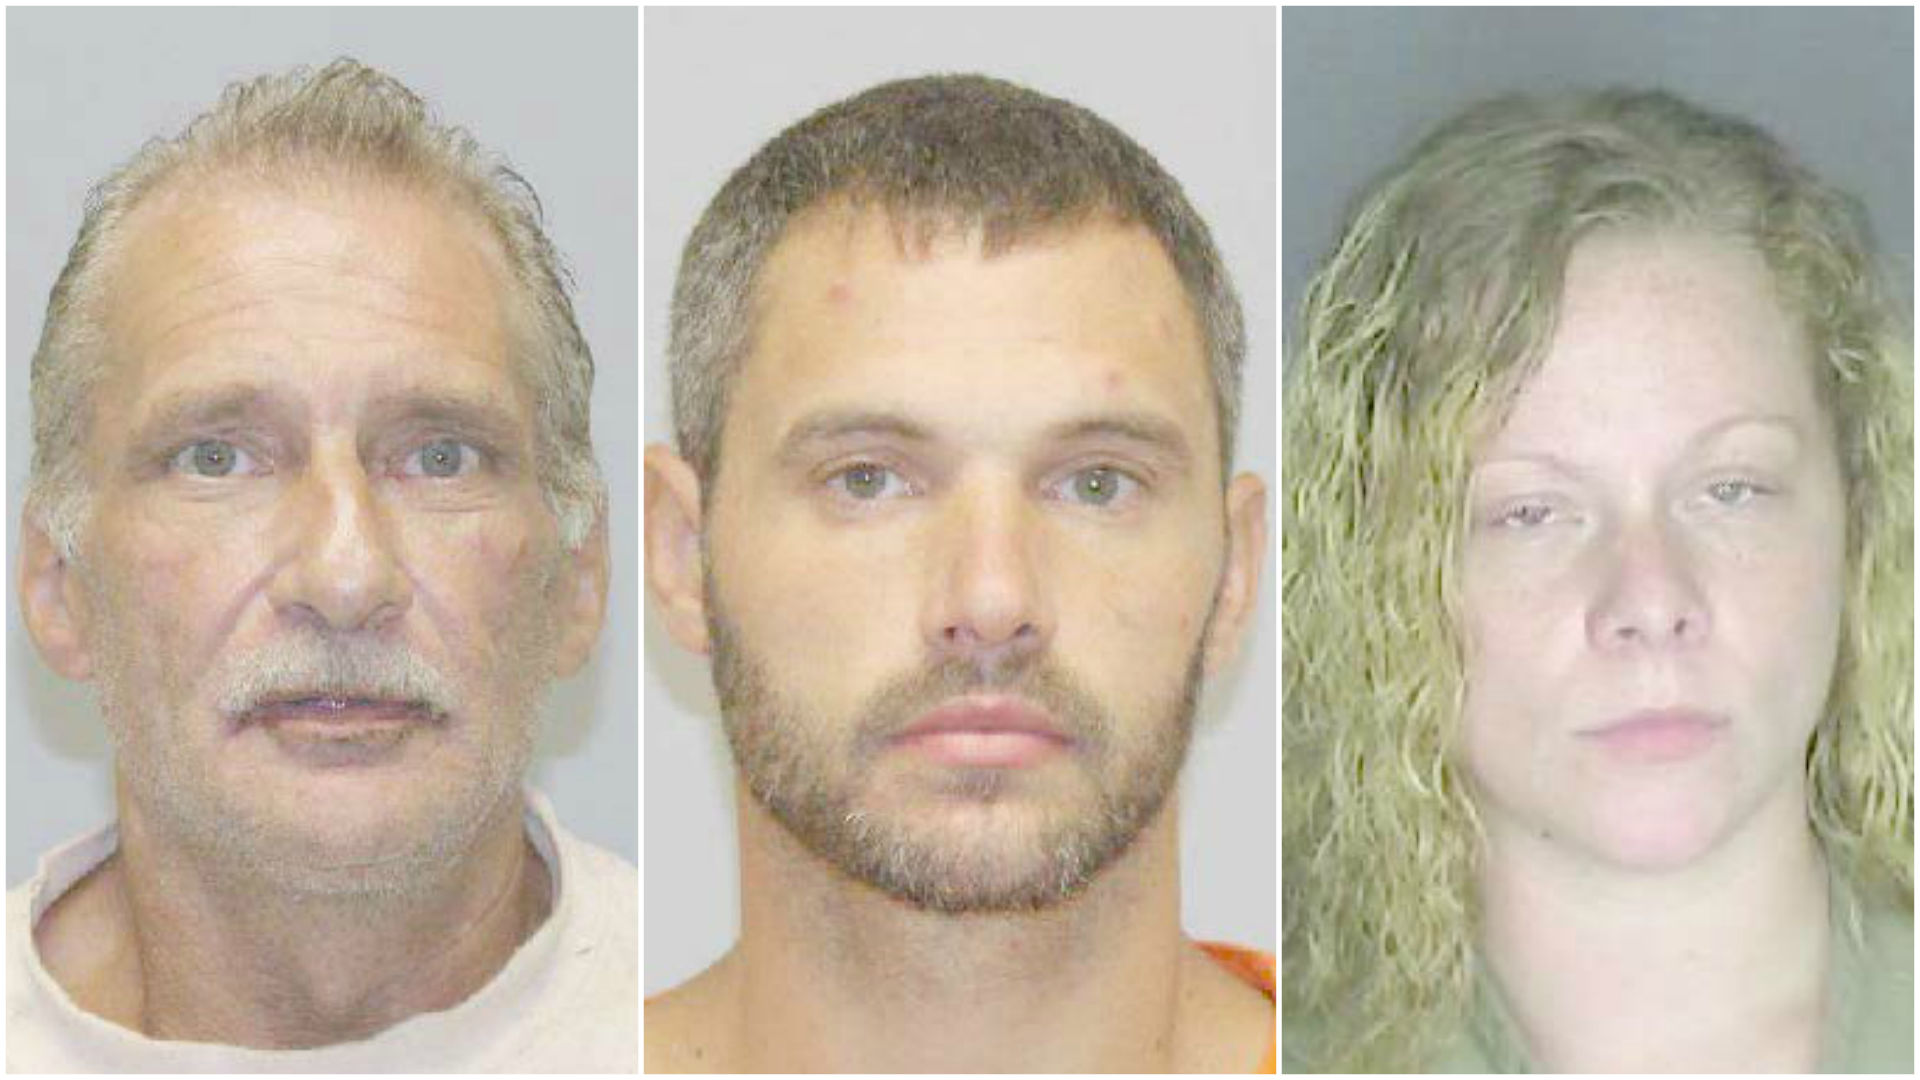 Blake, James and Delfino/ Madison County Sheriff's Office